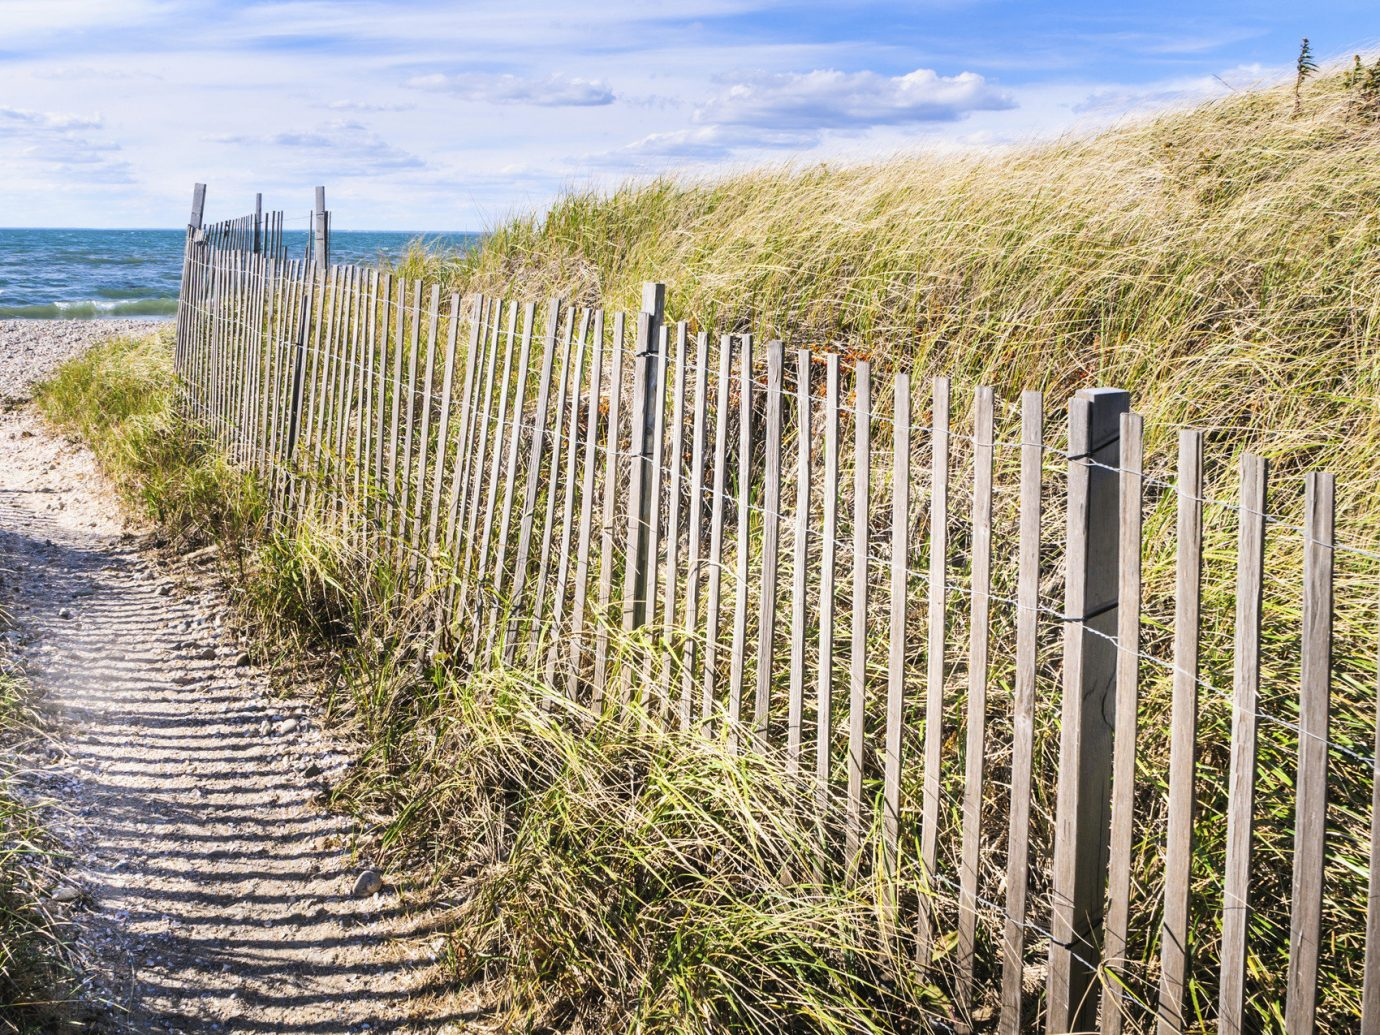 Beach East Coast USA Trip Ideas Fence sky outdoor grass habitat agriculture natural environment tree ecosystem walkway grass family field wetland outdoor structure Coast home fencing shrub marsh overlooking